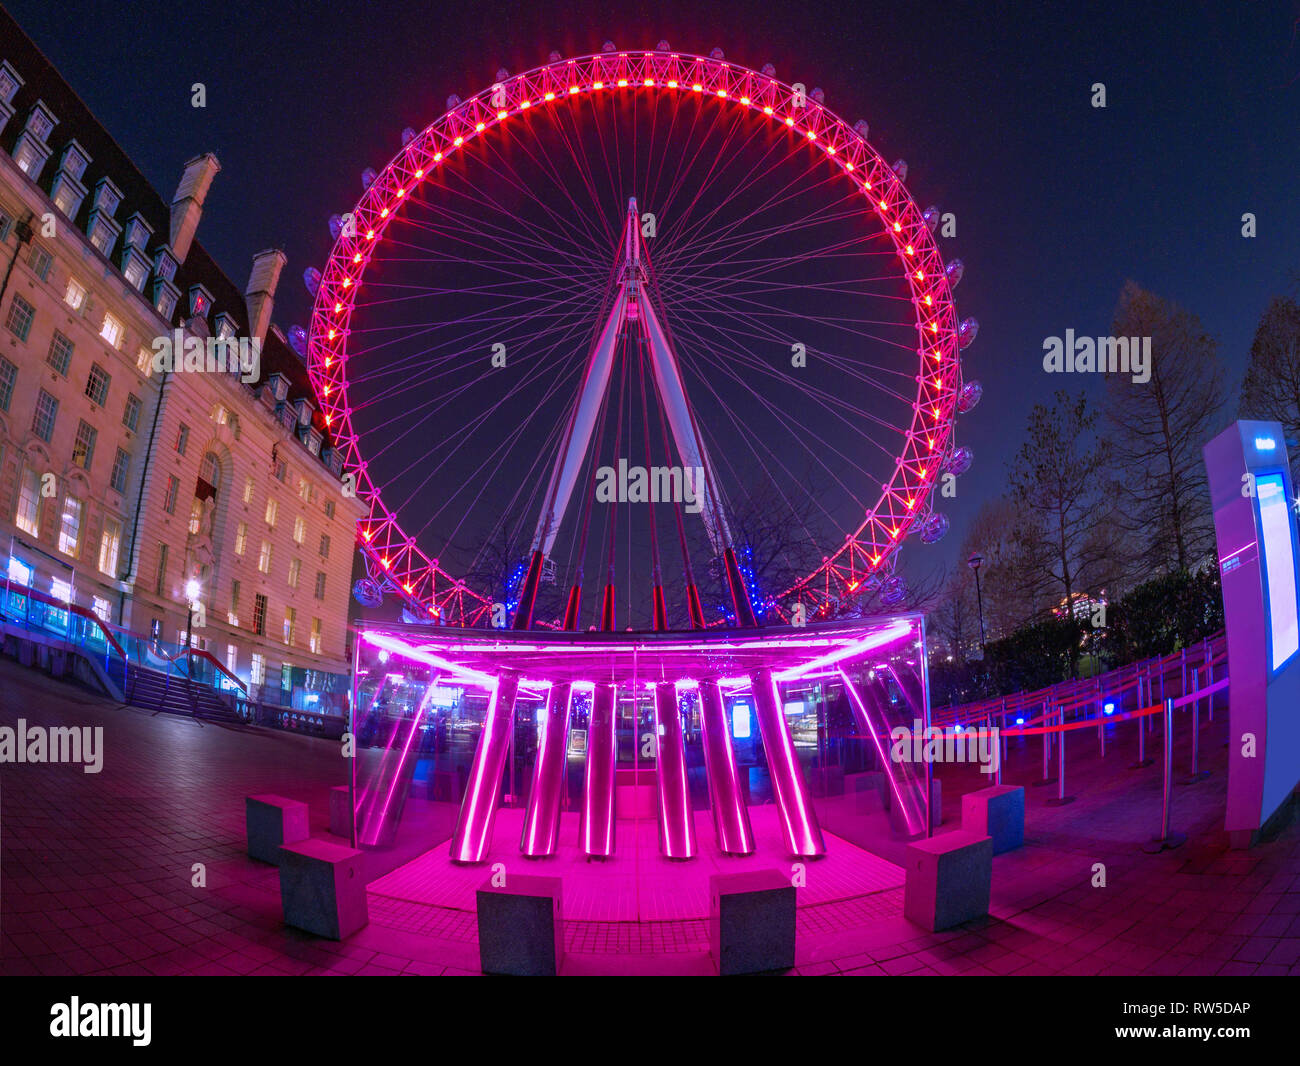 London, England, UK - February 27, 2019: Night scene with wide view of the famous London Eye against the sky full of stars, illuminated at night Stock Photo